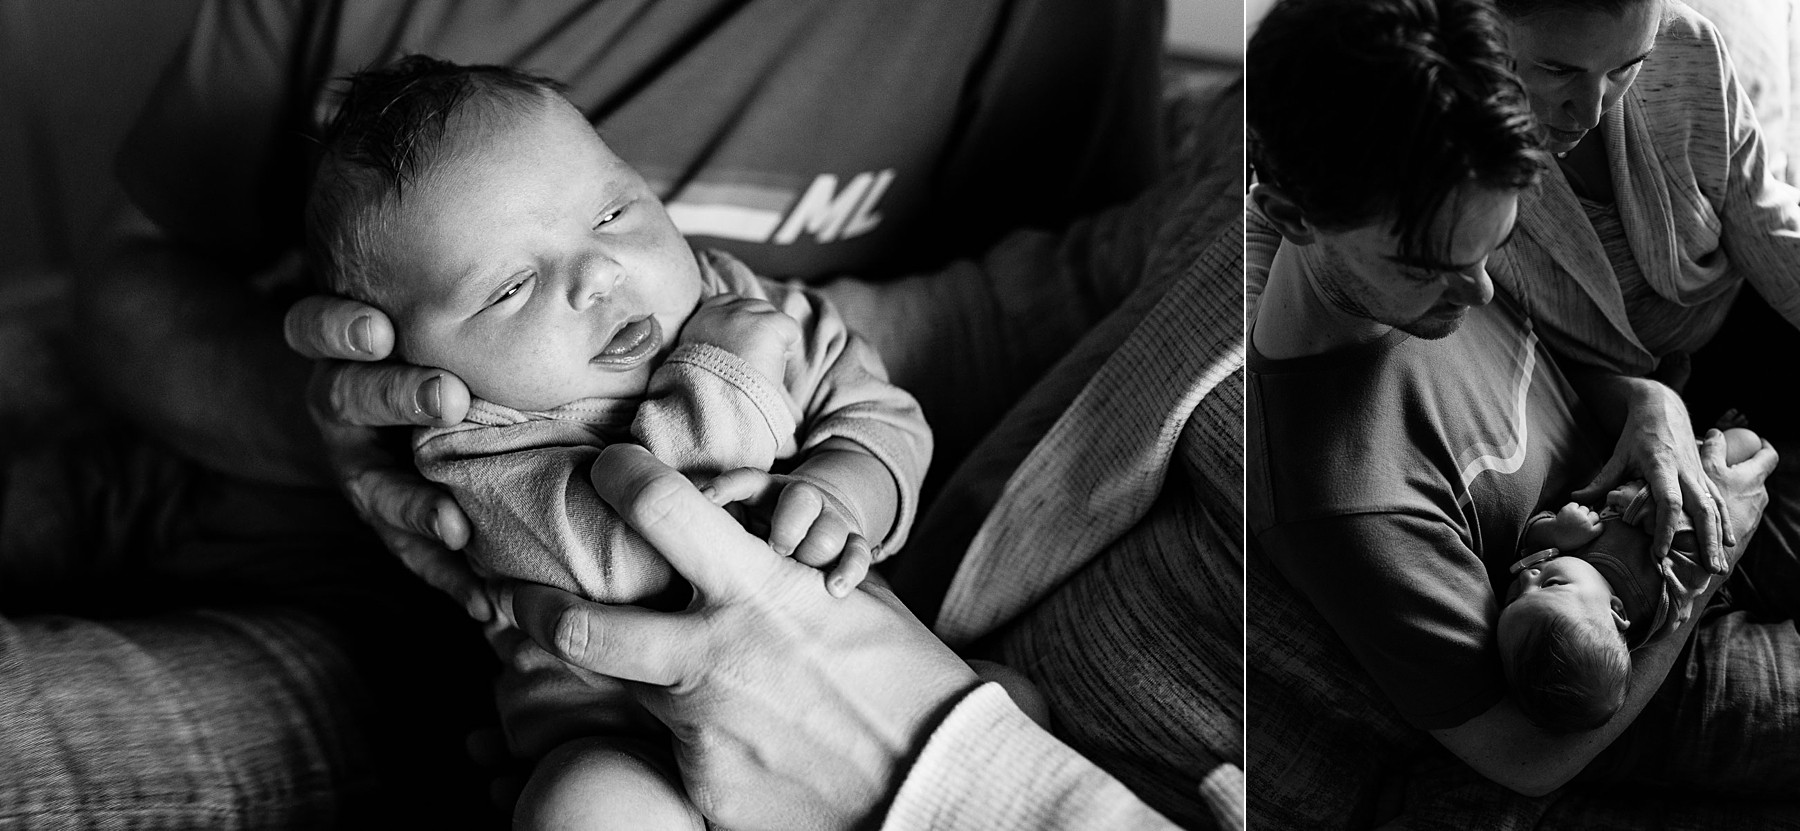 black and white images of newborn baby with parents